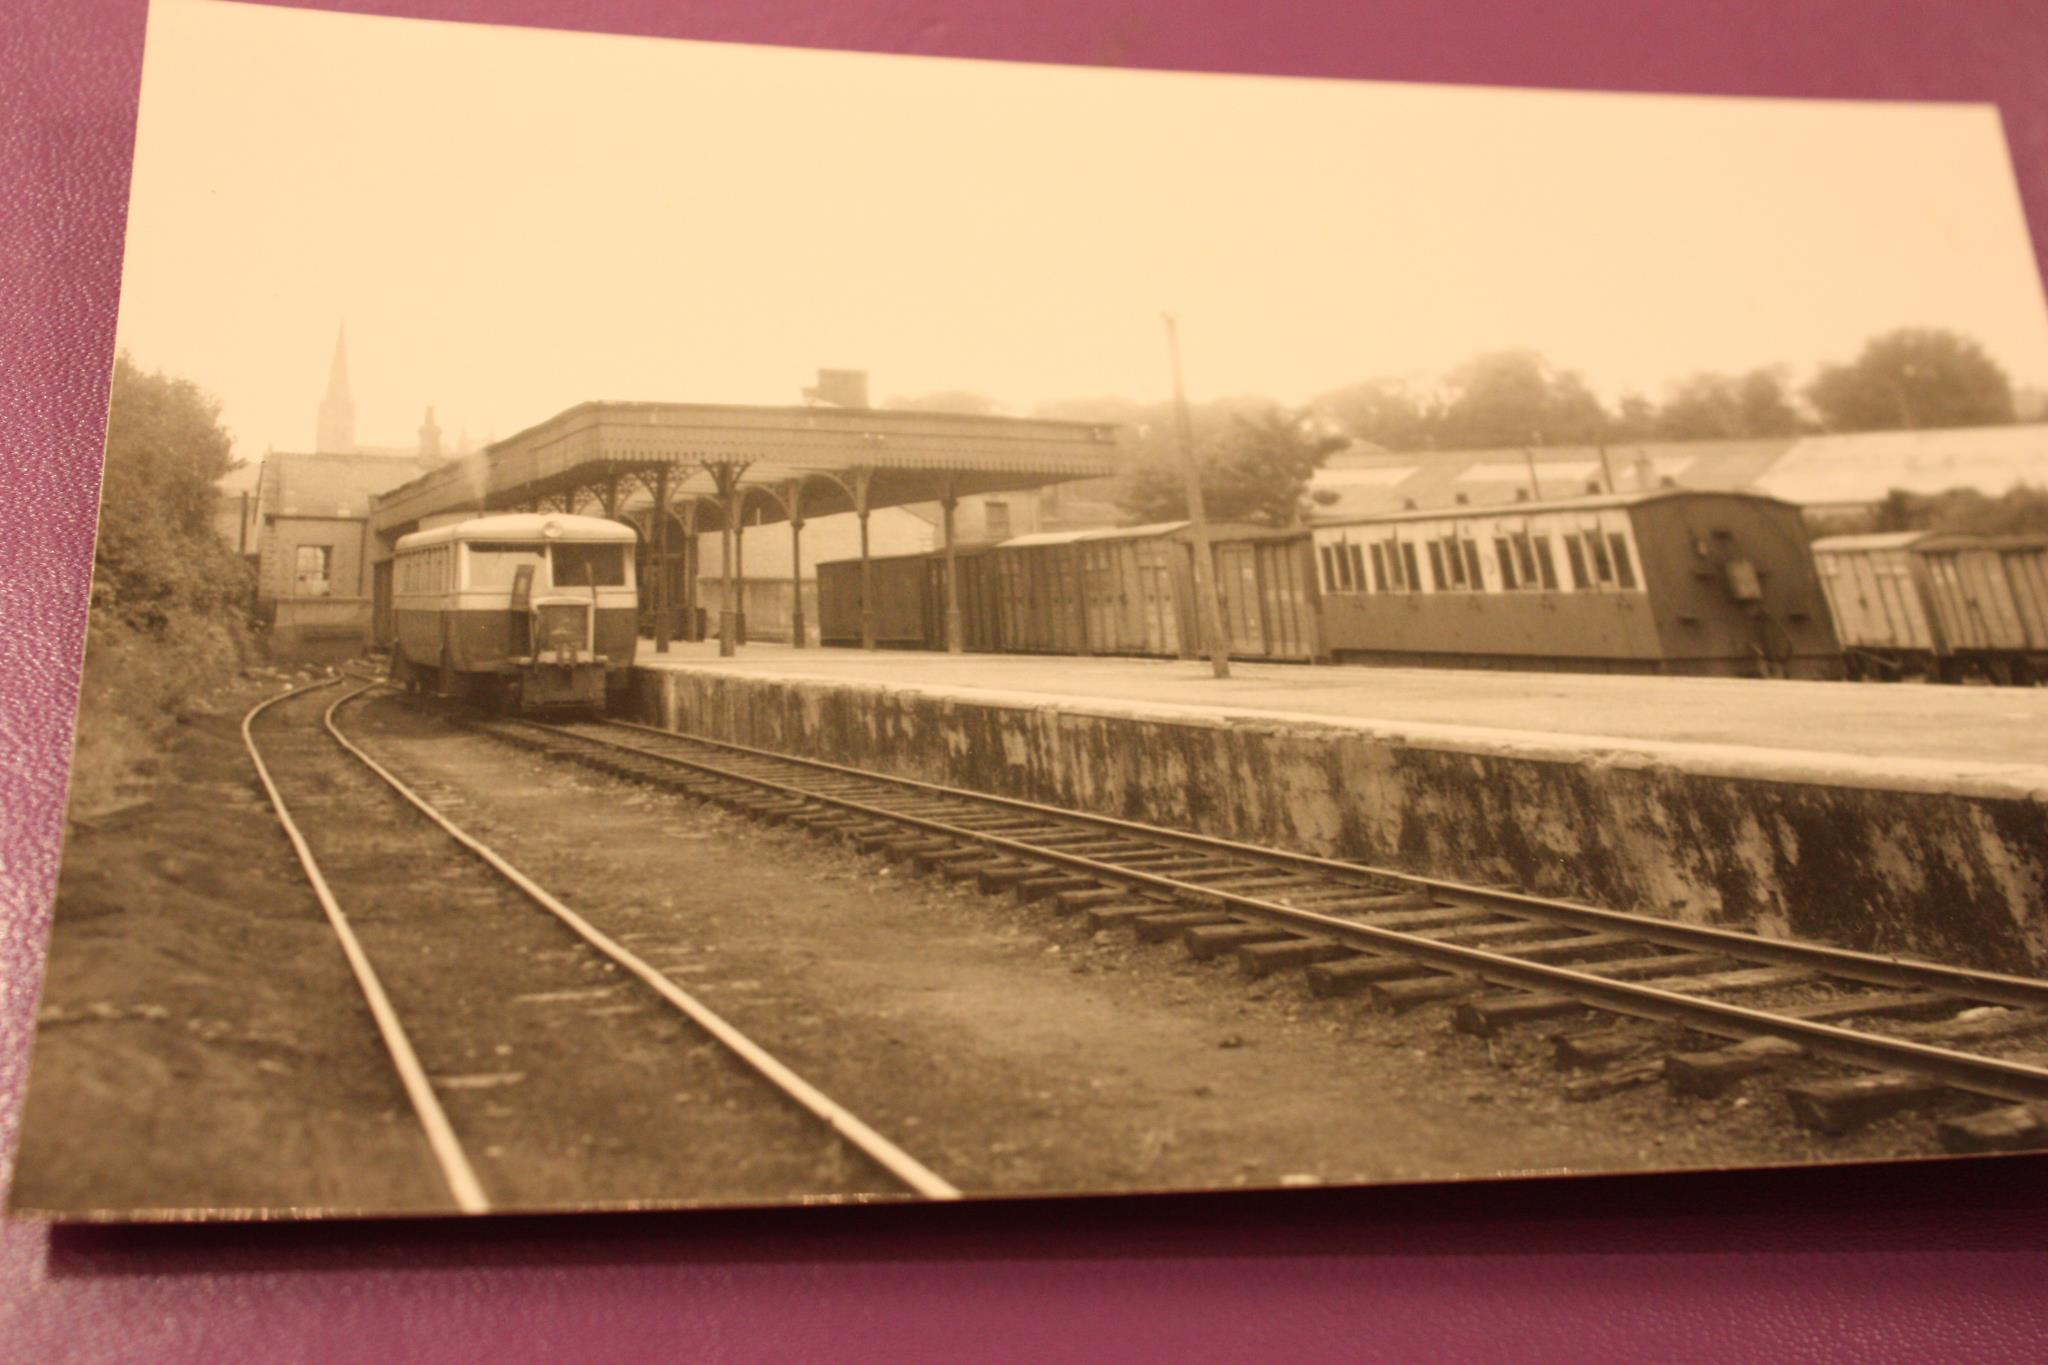 letterkenny01 - The County Donegal Railways #2